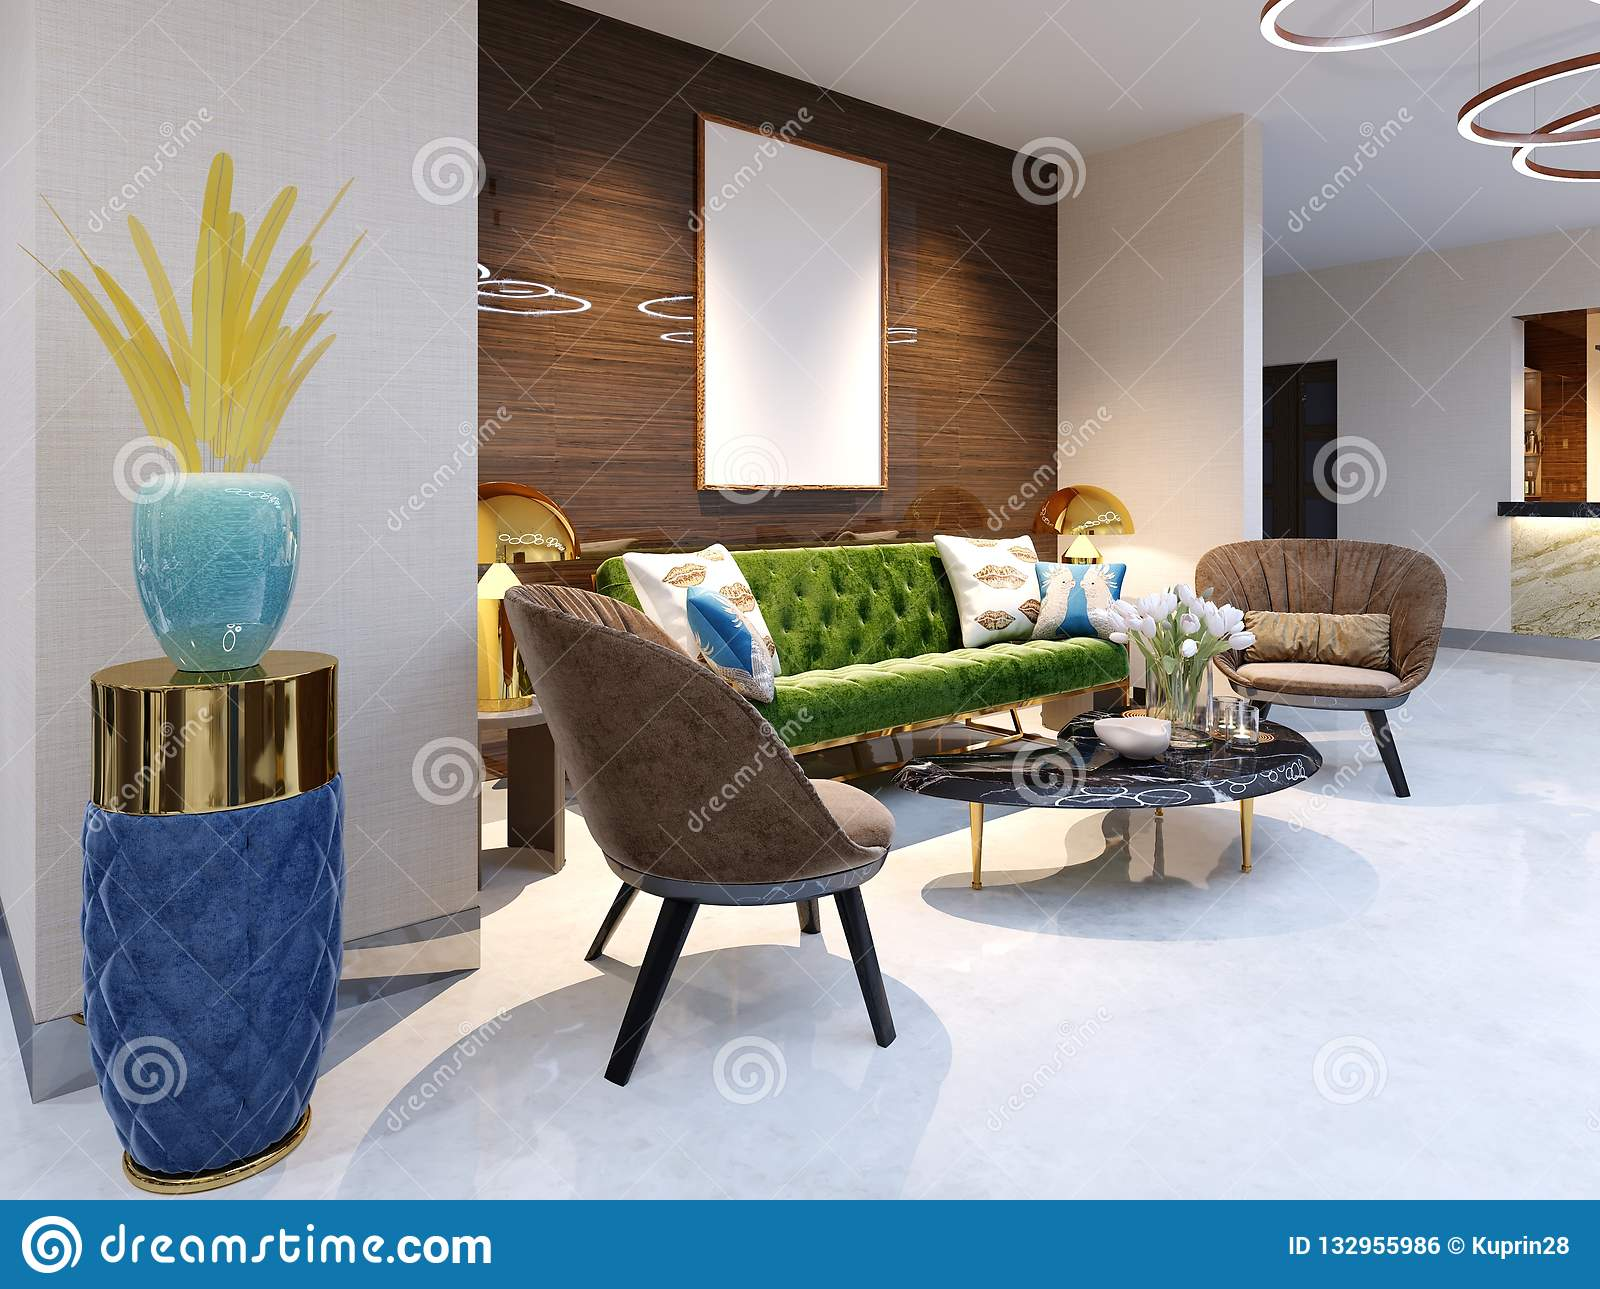 Reception area and lounge area with beautiful colored furniture, a sofa with two armchairs, metal legs and soft upholstery. The